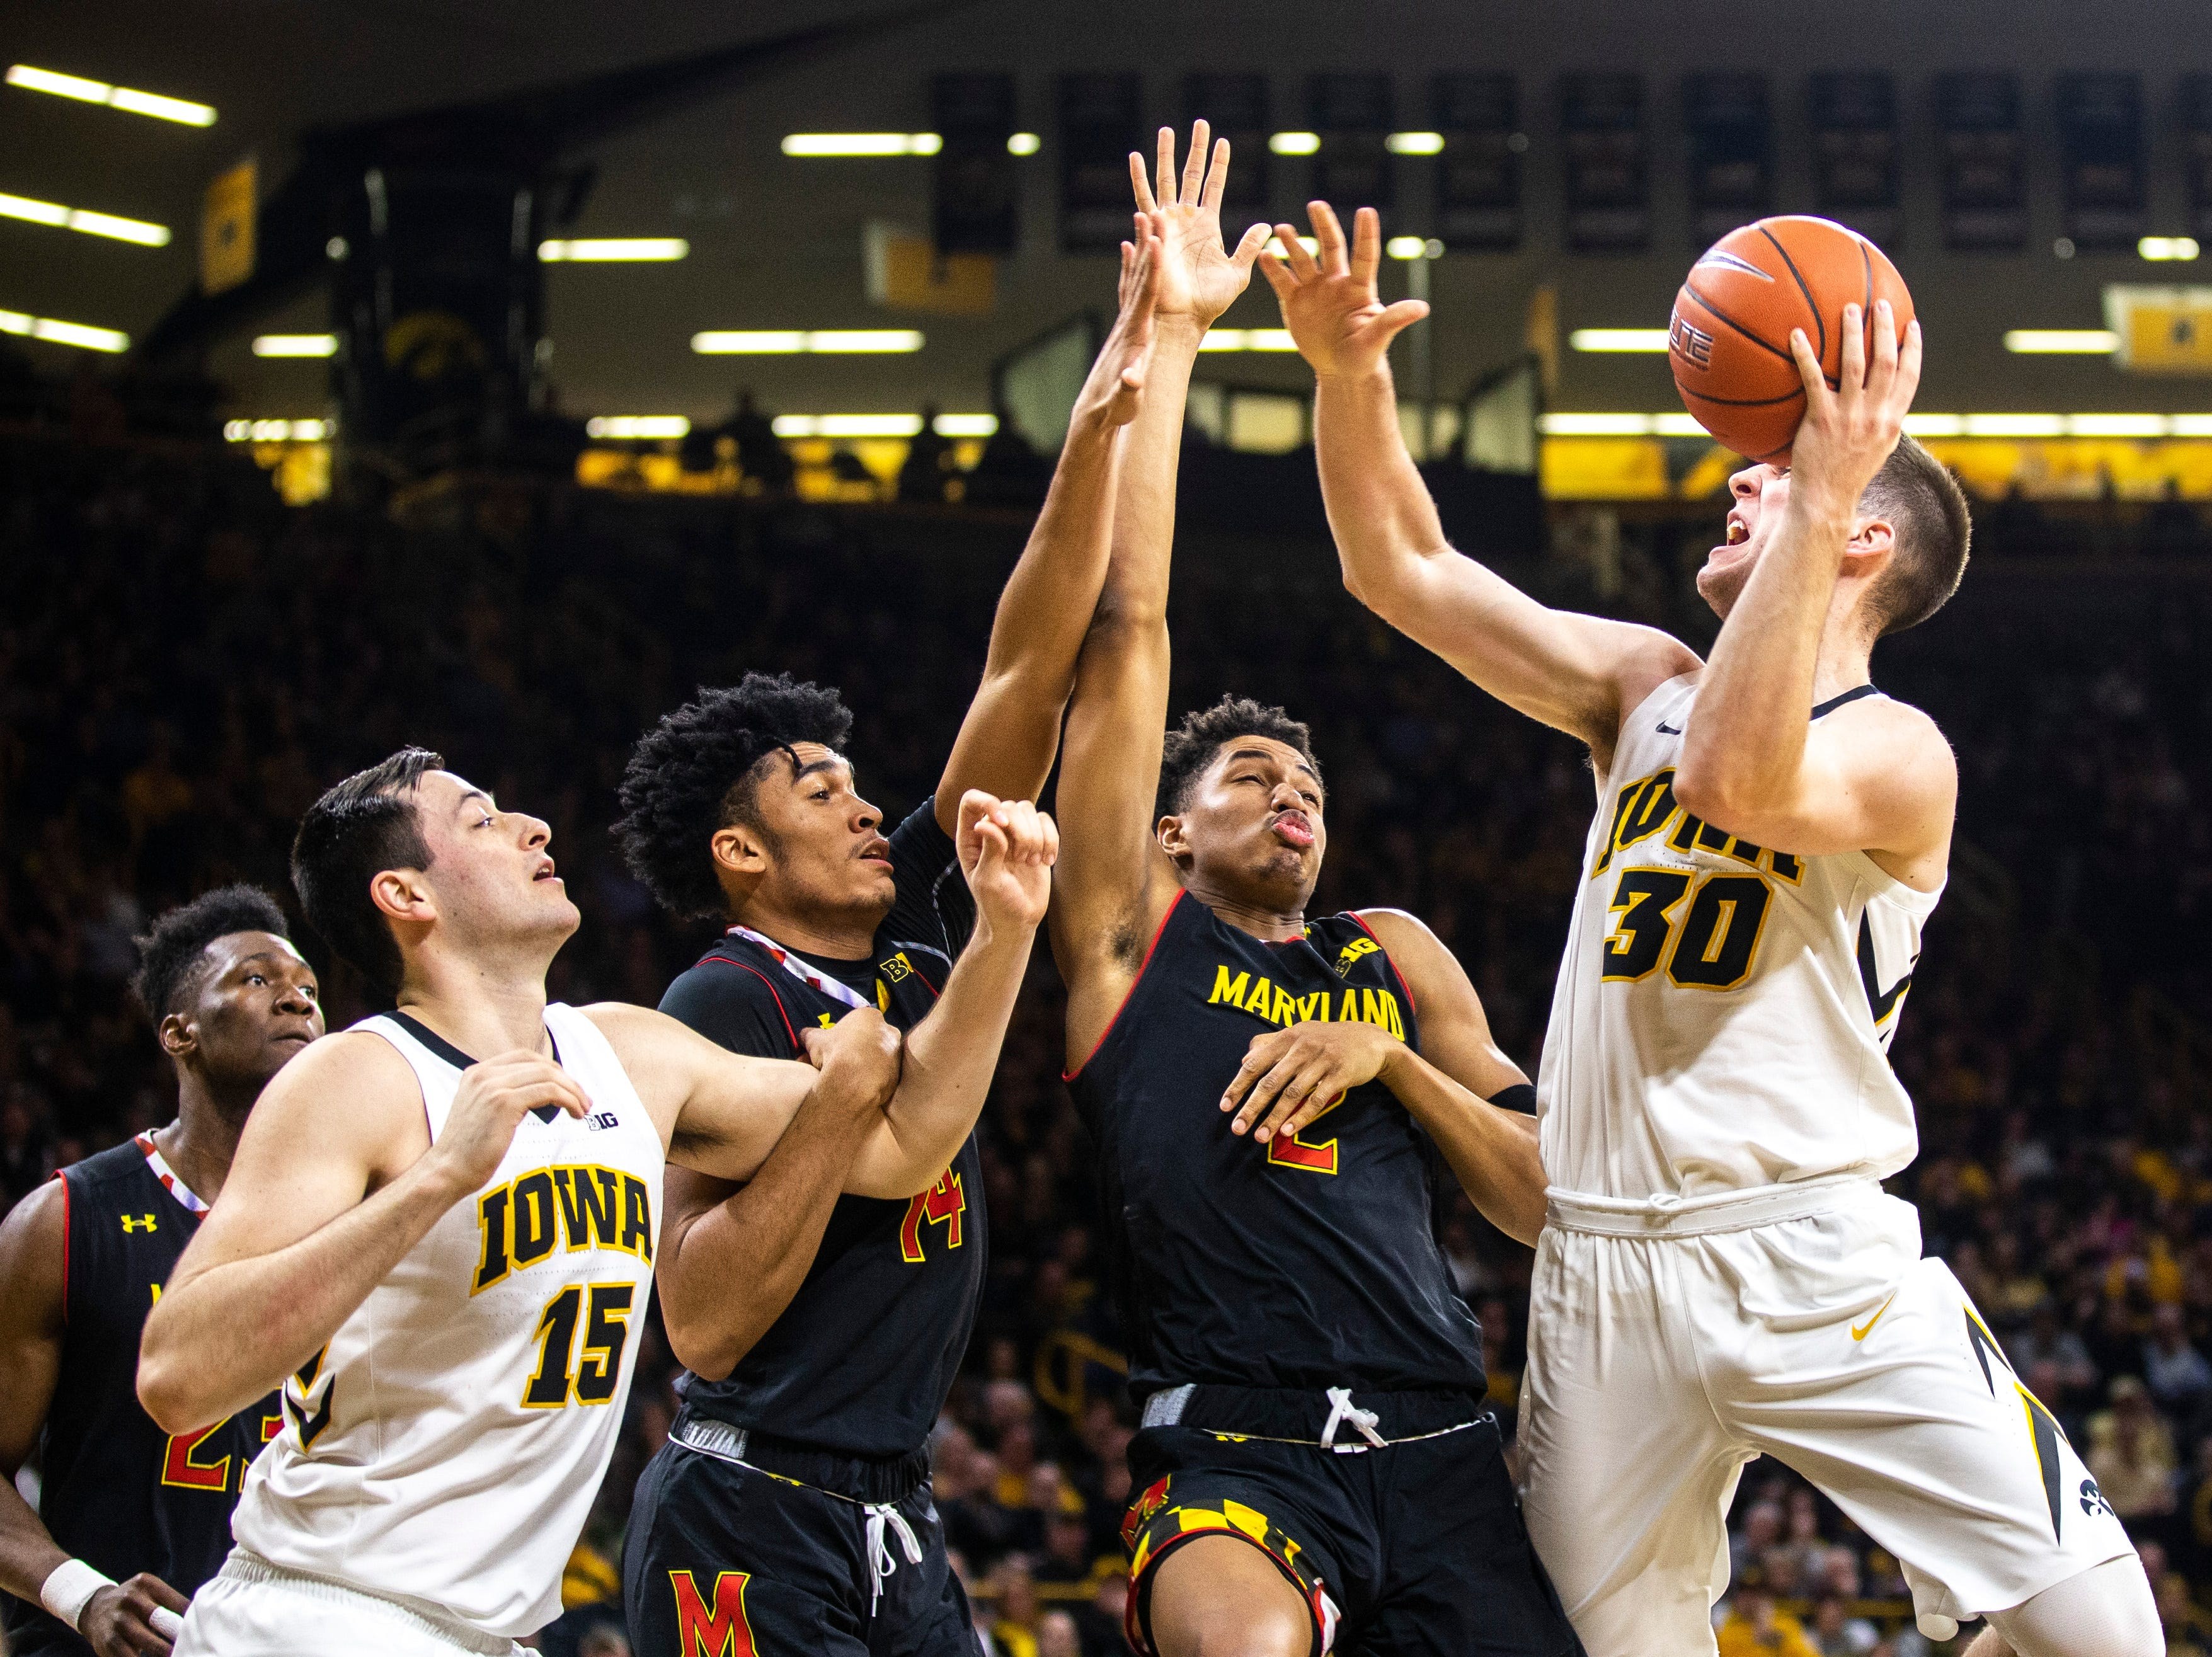 Iowa guard Connor McCaffery (30) drives to the basket while Maryland guard Aaron Wiggins (2) and Maryland forward Ricky Lindo Jr. (14) defend during a NCAA Big Ten Conference men's basketball game on Tuesday, Feb. 19, 2019 at Carver-Hawkeye Arena in Iowa City, Iowa.